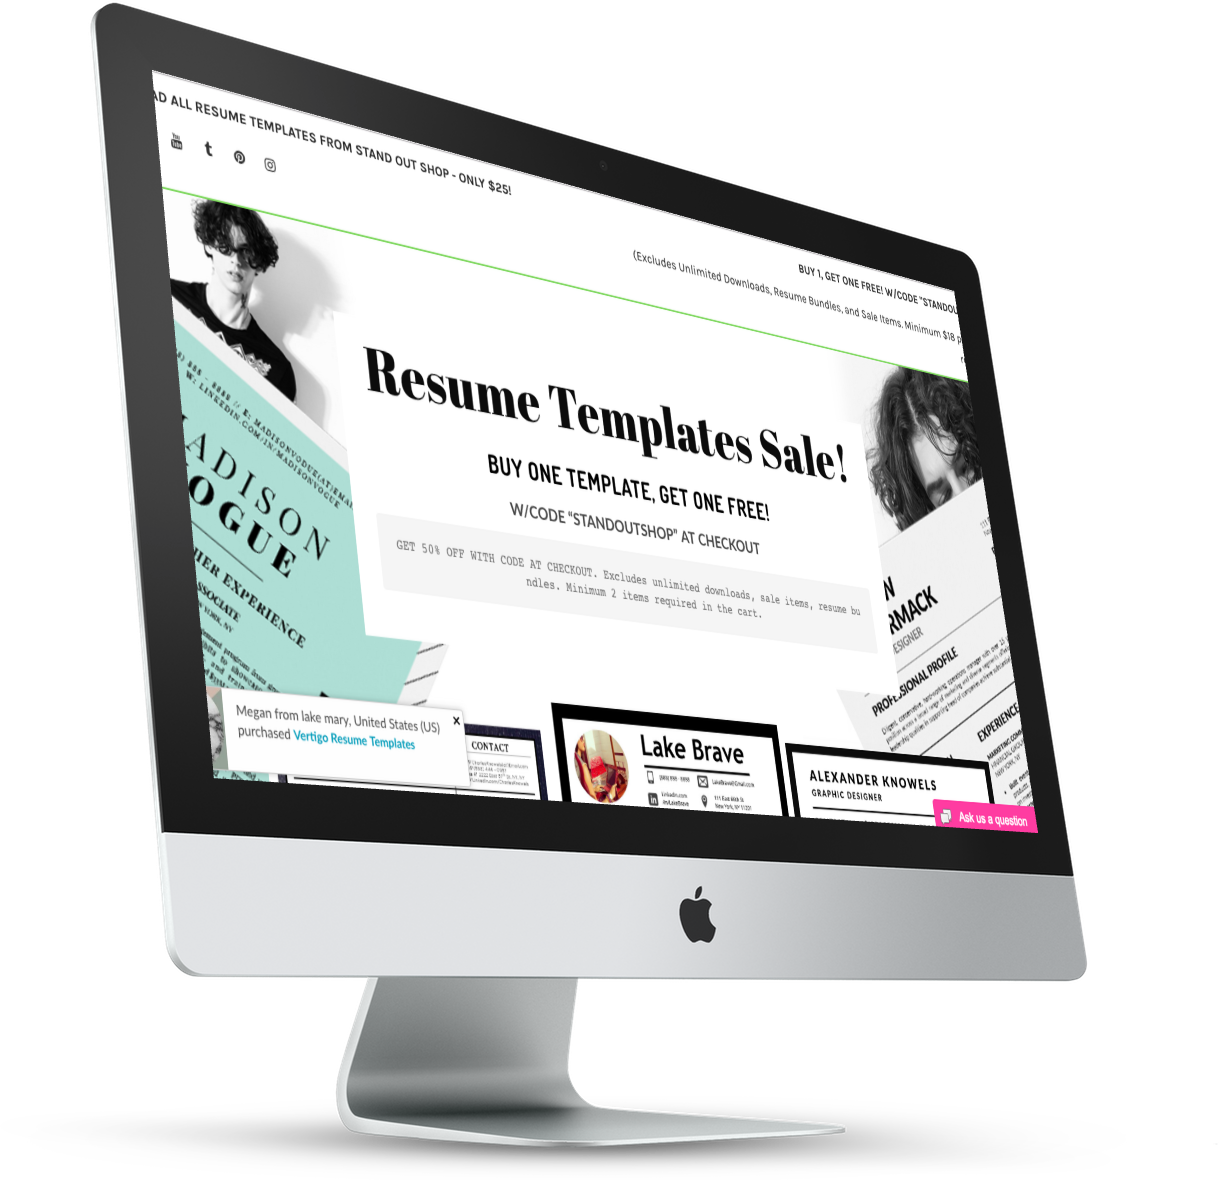 1-STAND OUT SHOP EYEBRANDIT WEB DESIGN